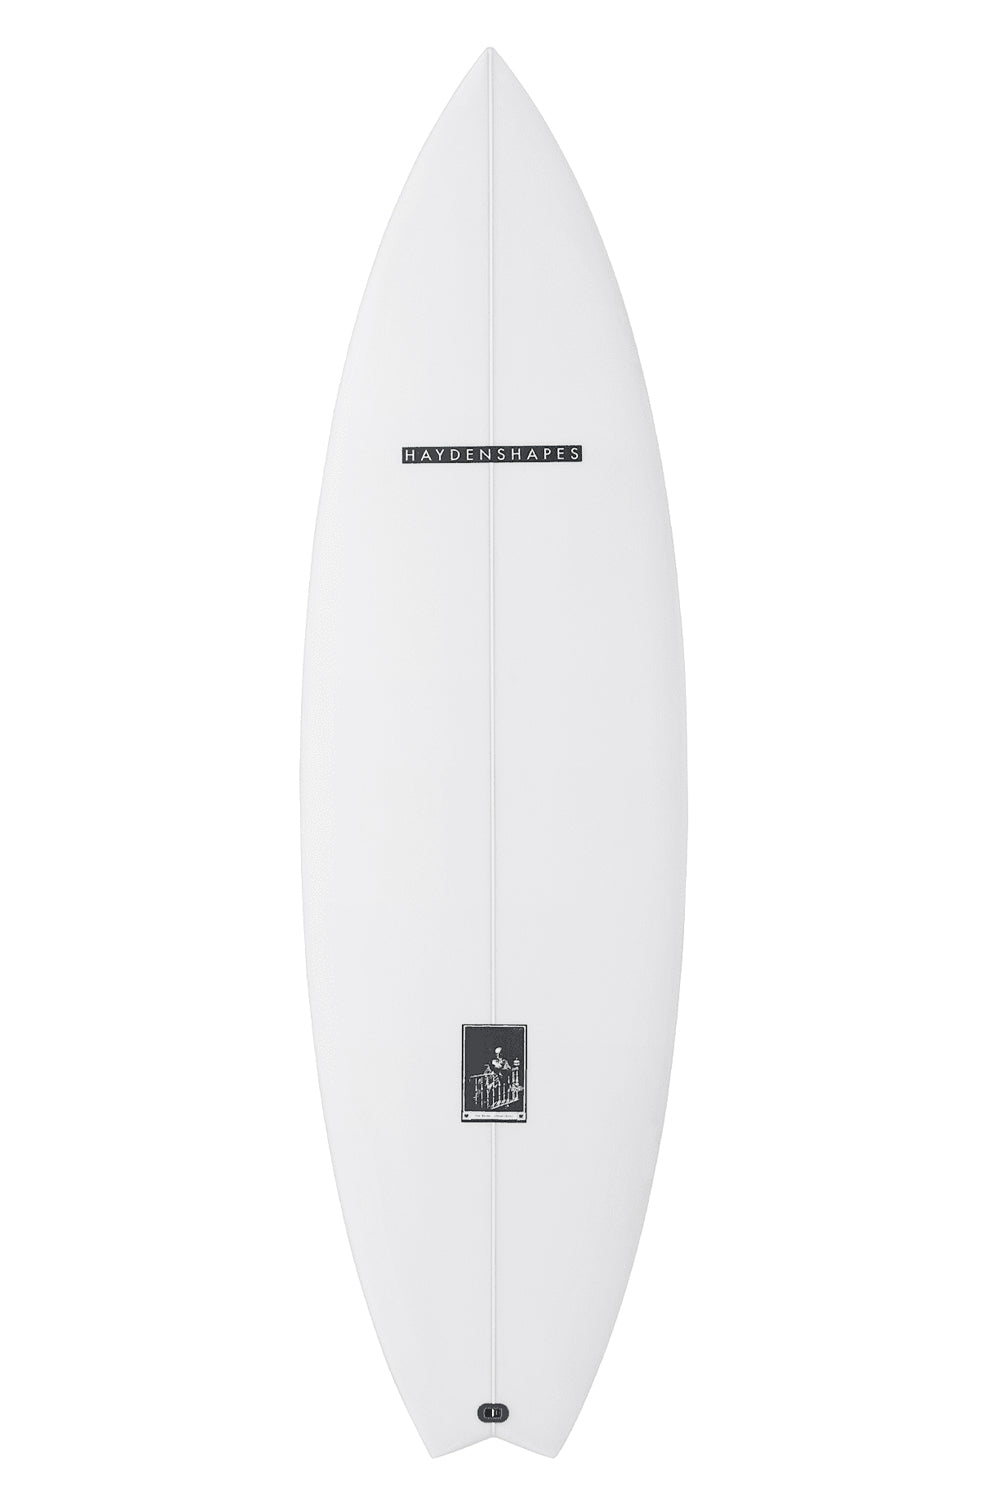 Haydenshapes Raven PU Surfboards